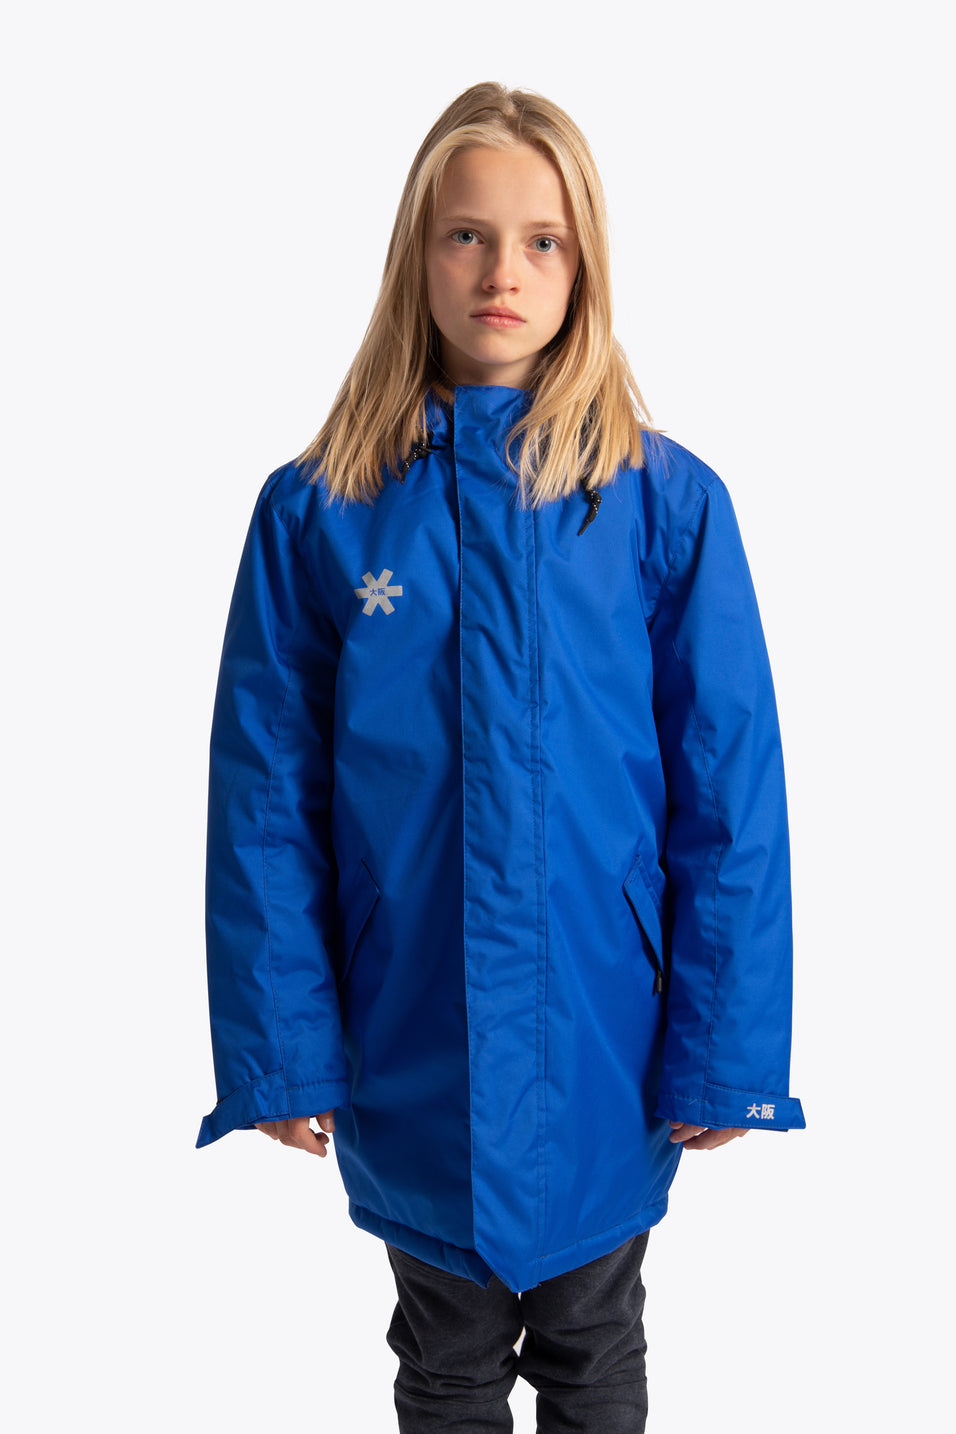 Deshi Stadium Jacket - Royal Blue